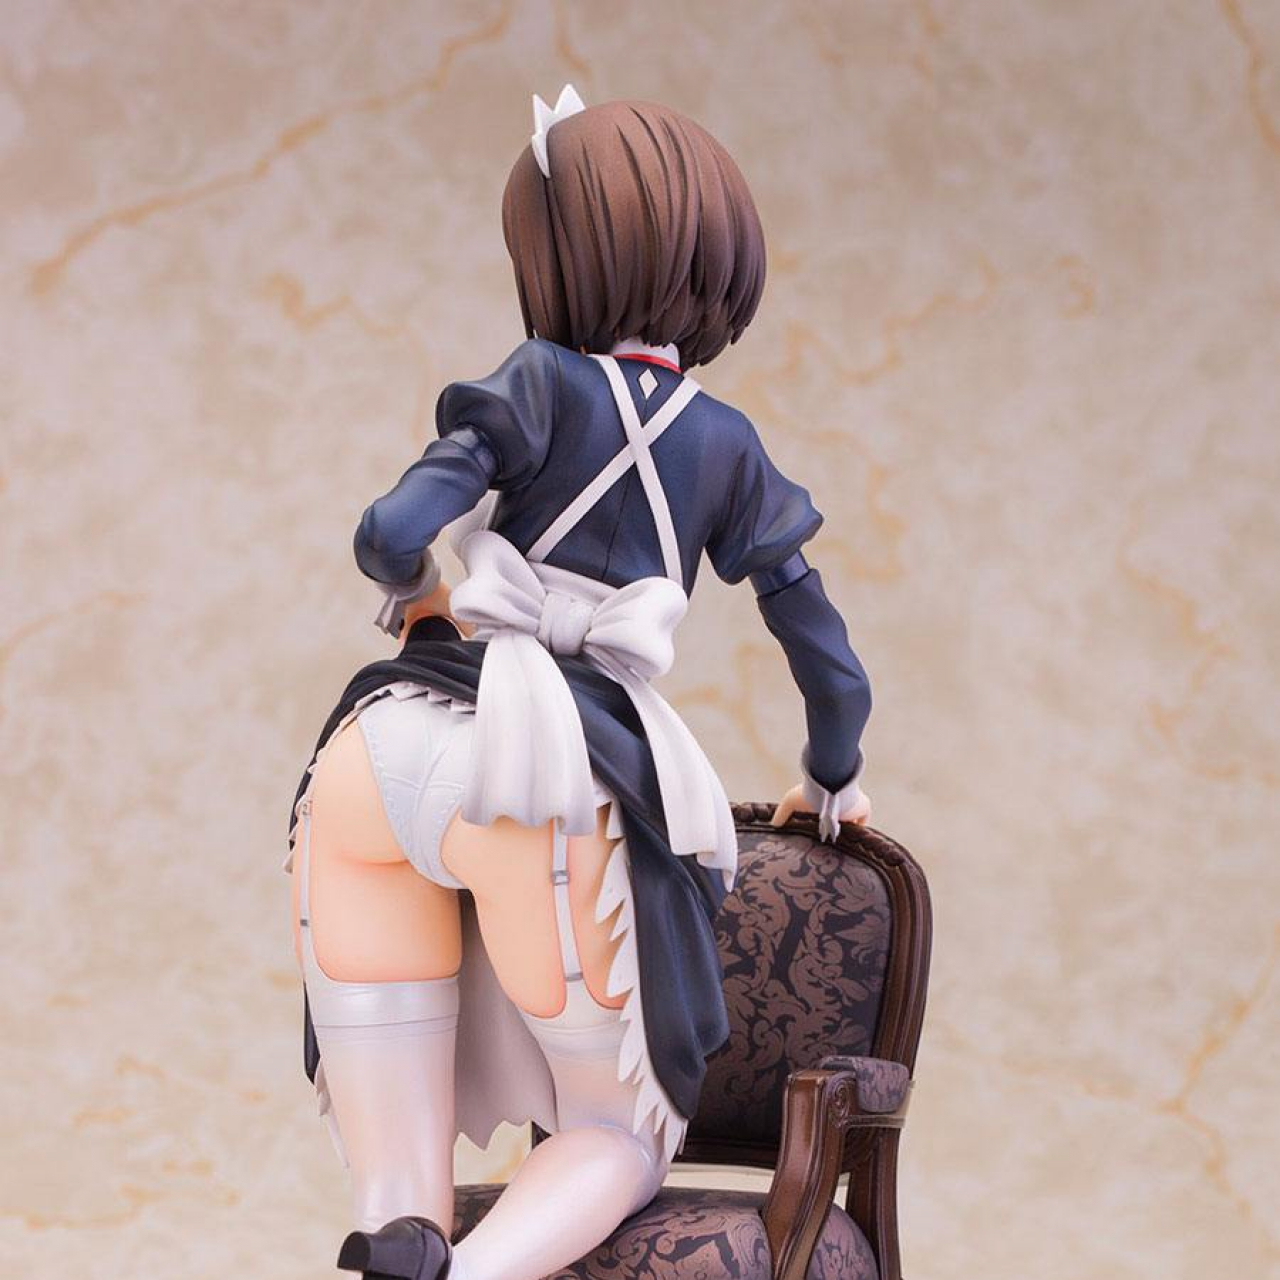 Original Character PVC Statue 1/6 Chitose Itou illustration by 40hara DX Ver. 27 cm